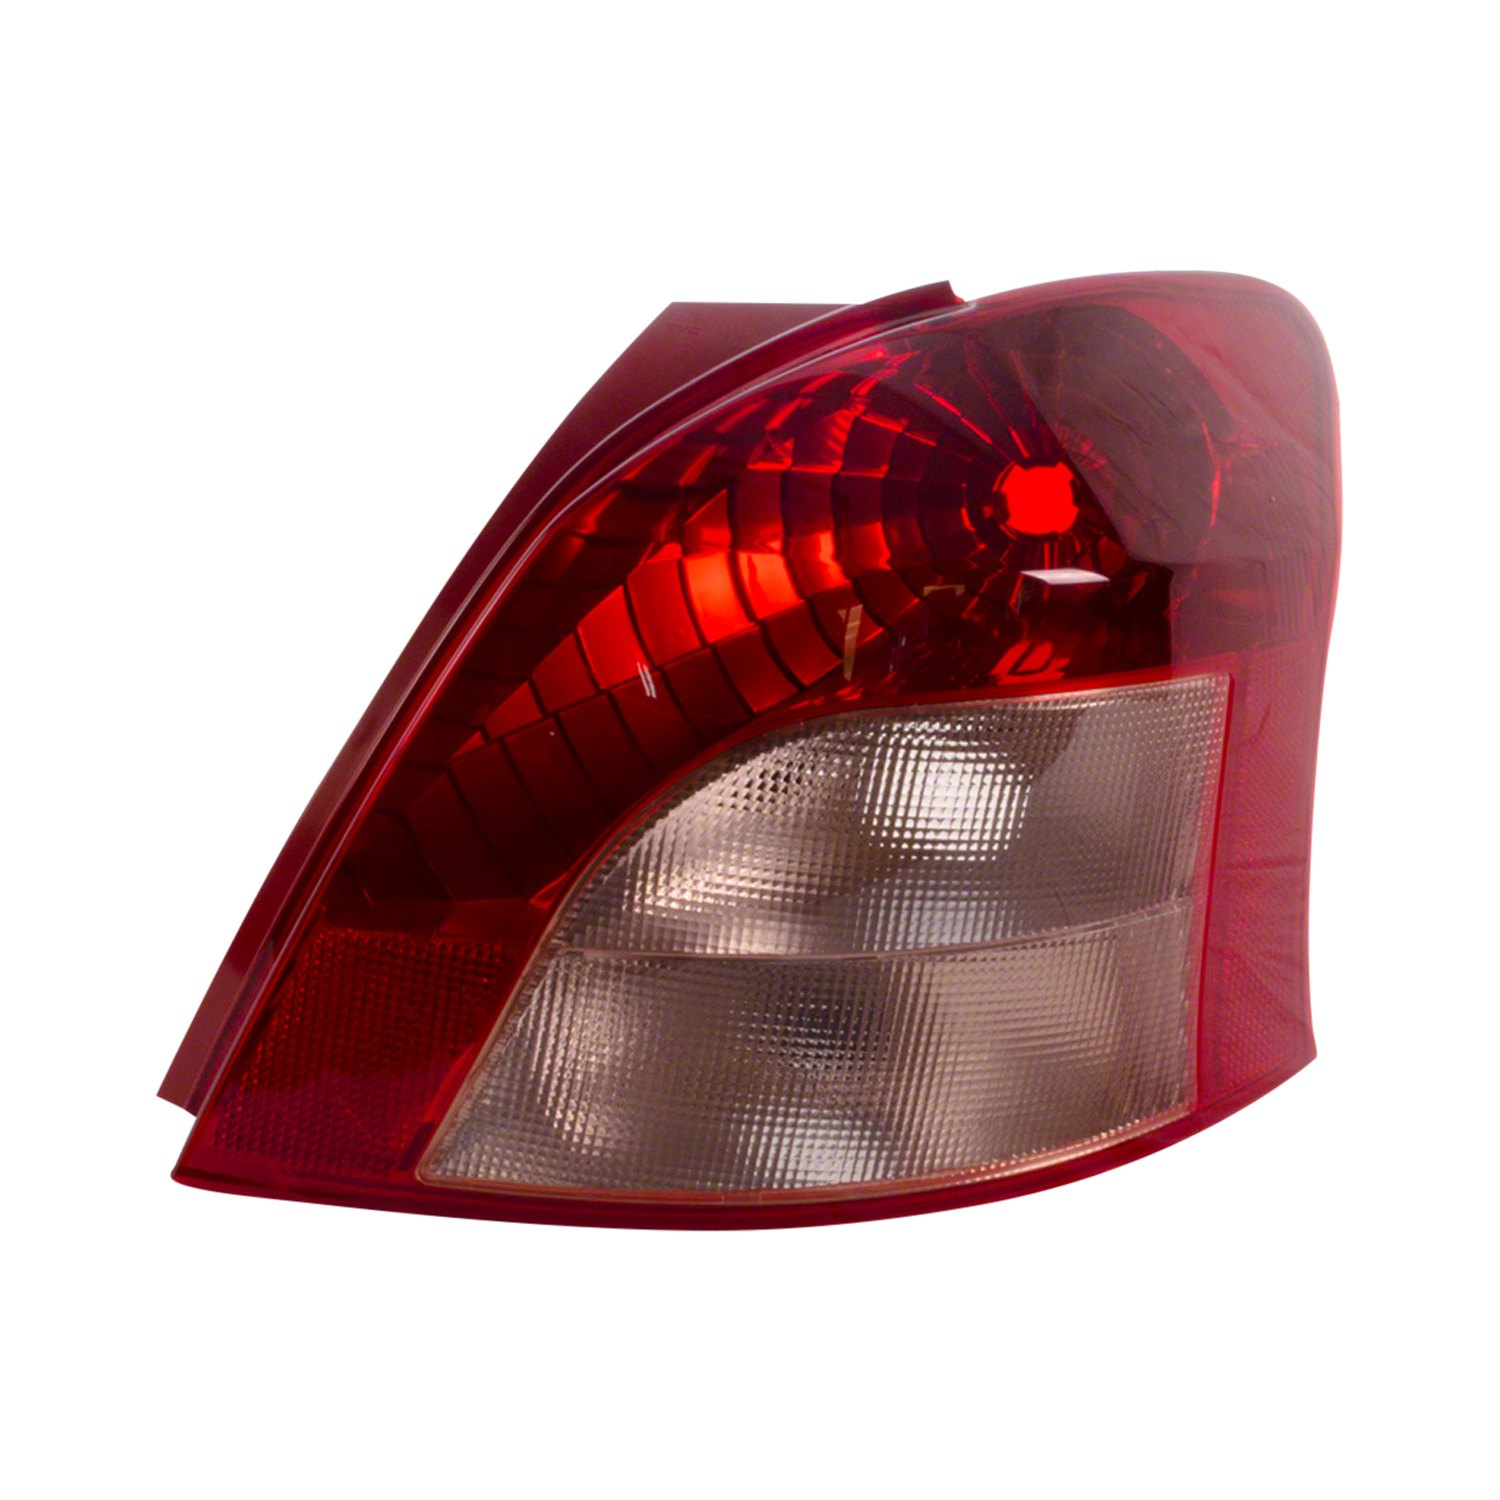 Tail Light Lens Replacement : Replace to oe passenger side replacement tail